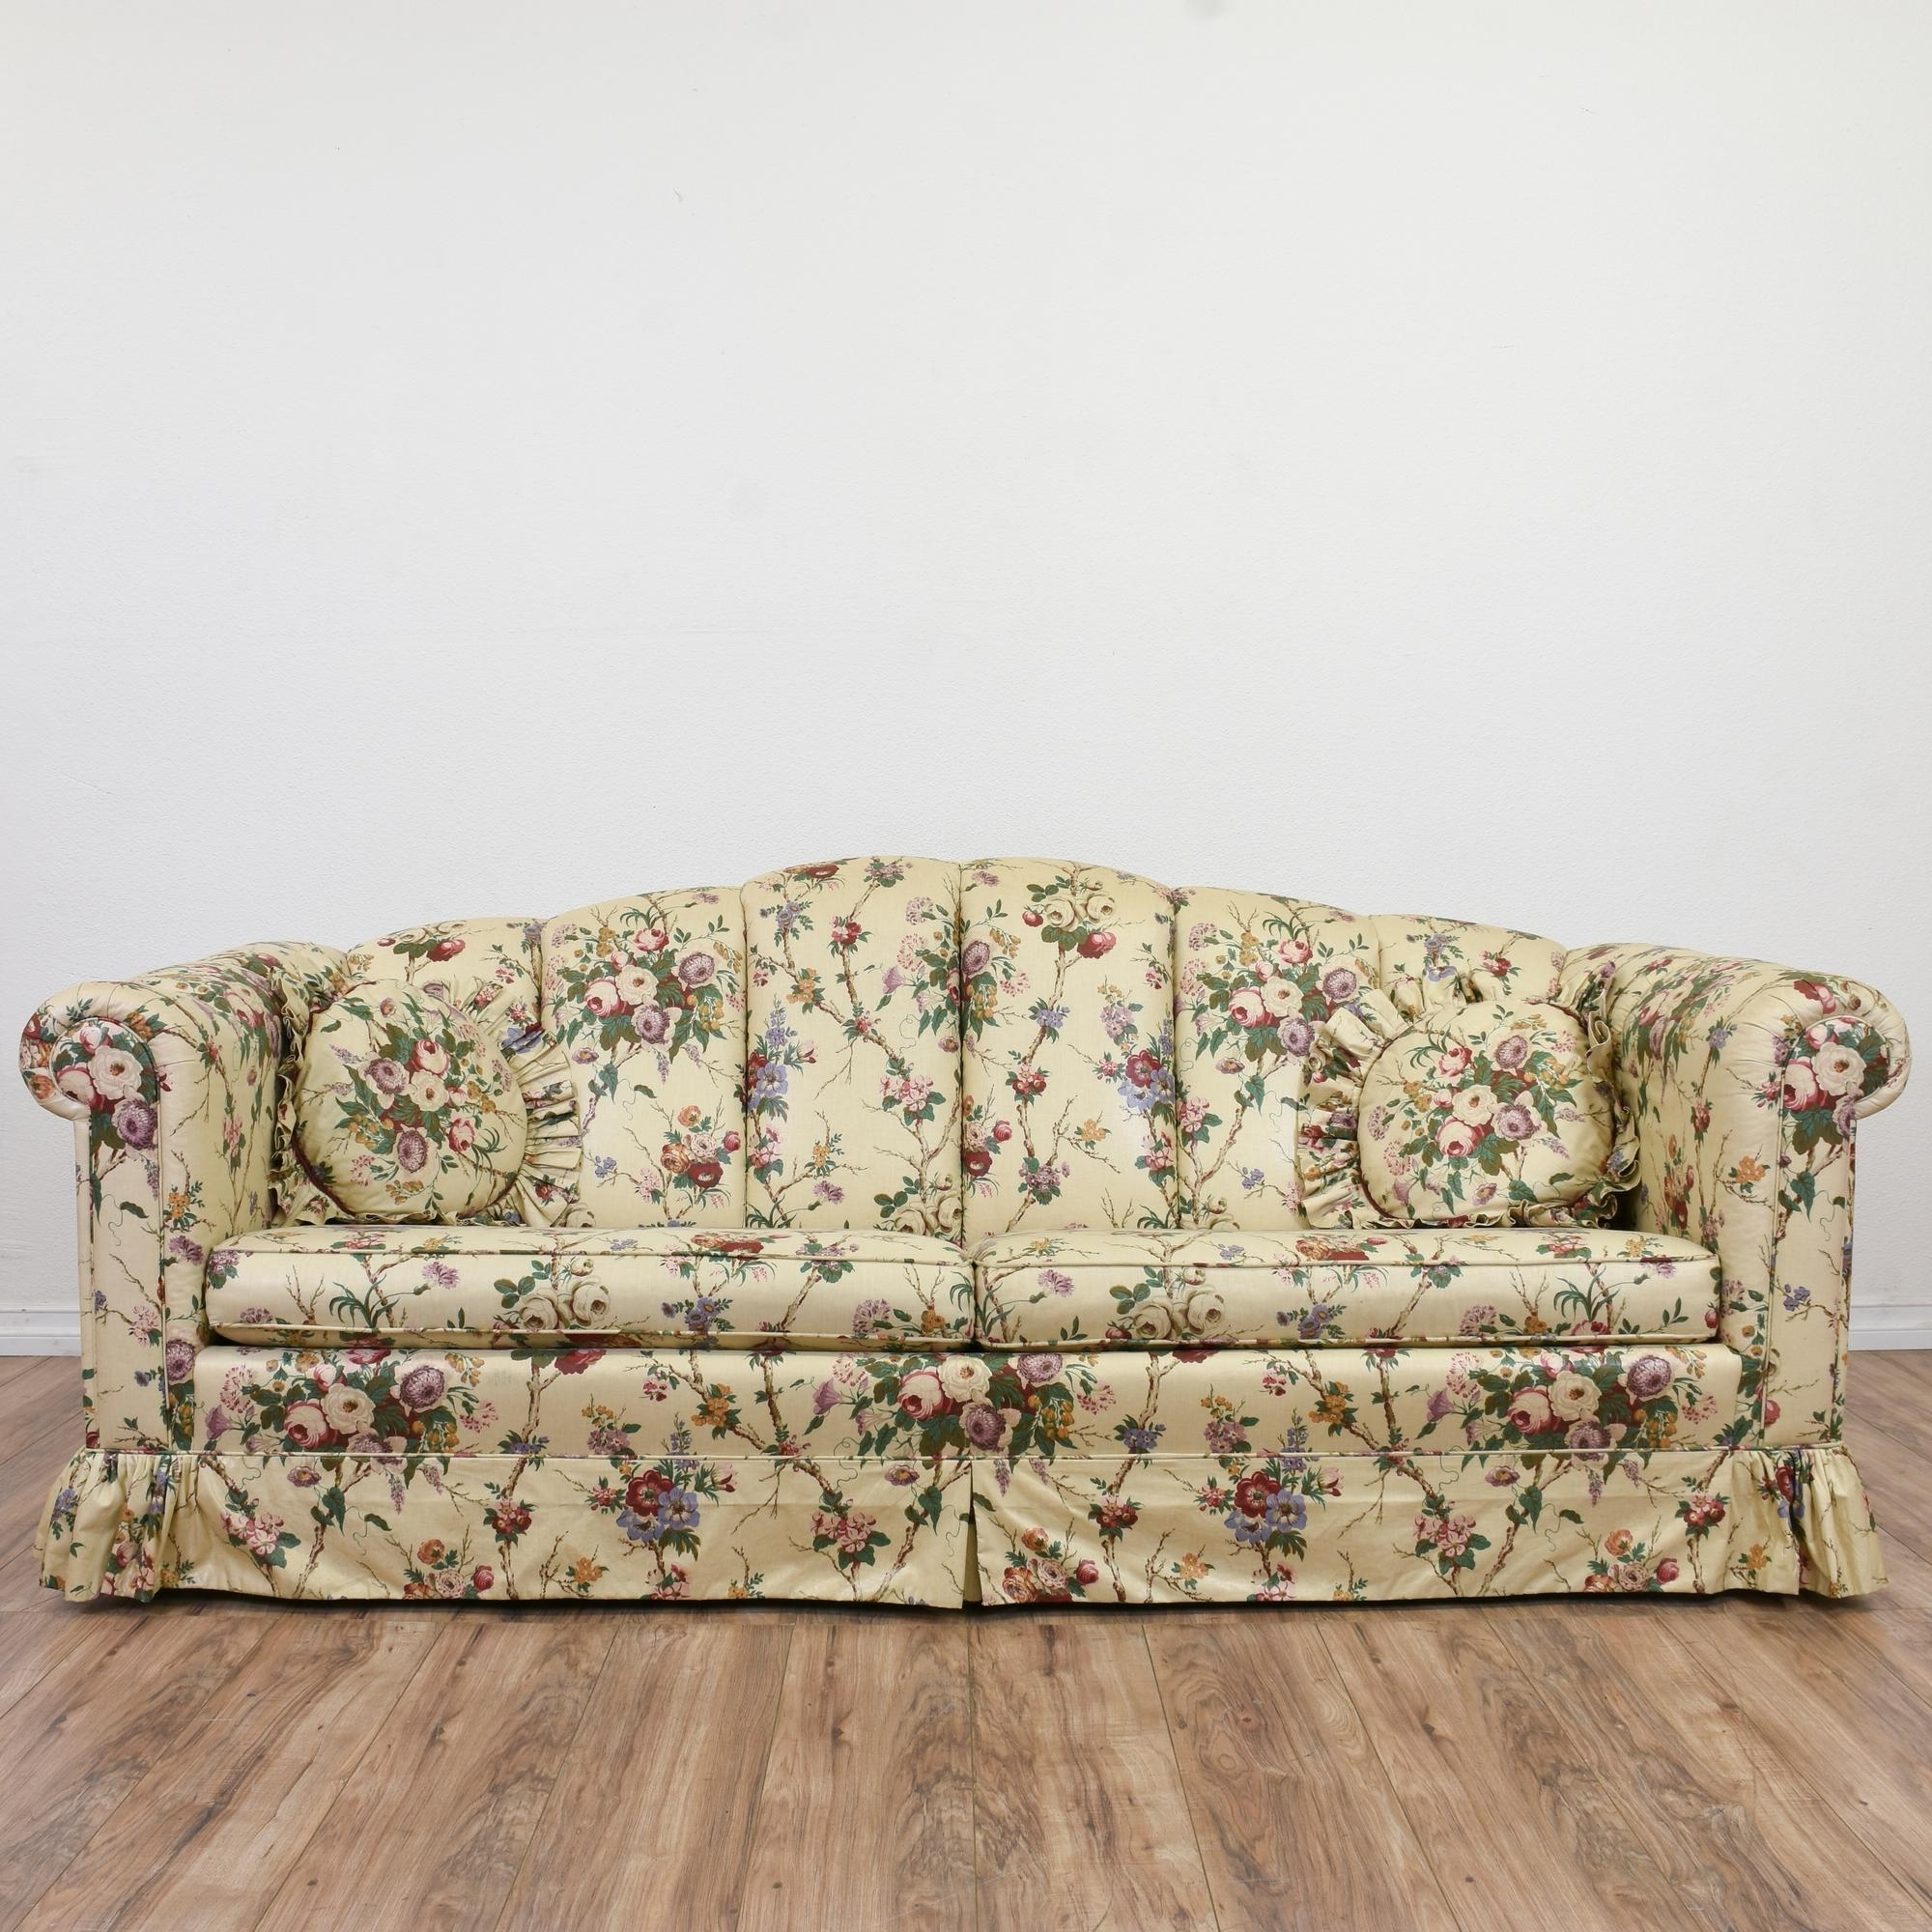 This Sofa Is Upholstered In A Durable Off White Beige, Pink And With Regard To Most Recent Chintz Sofas (View 2 of 15)